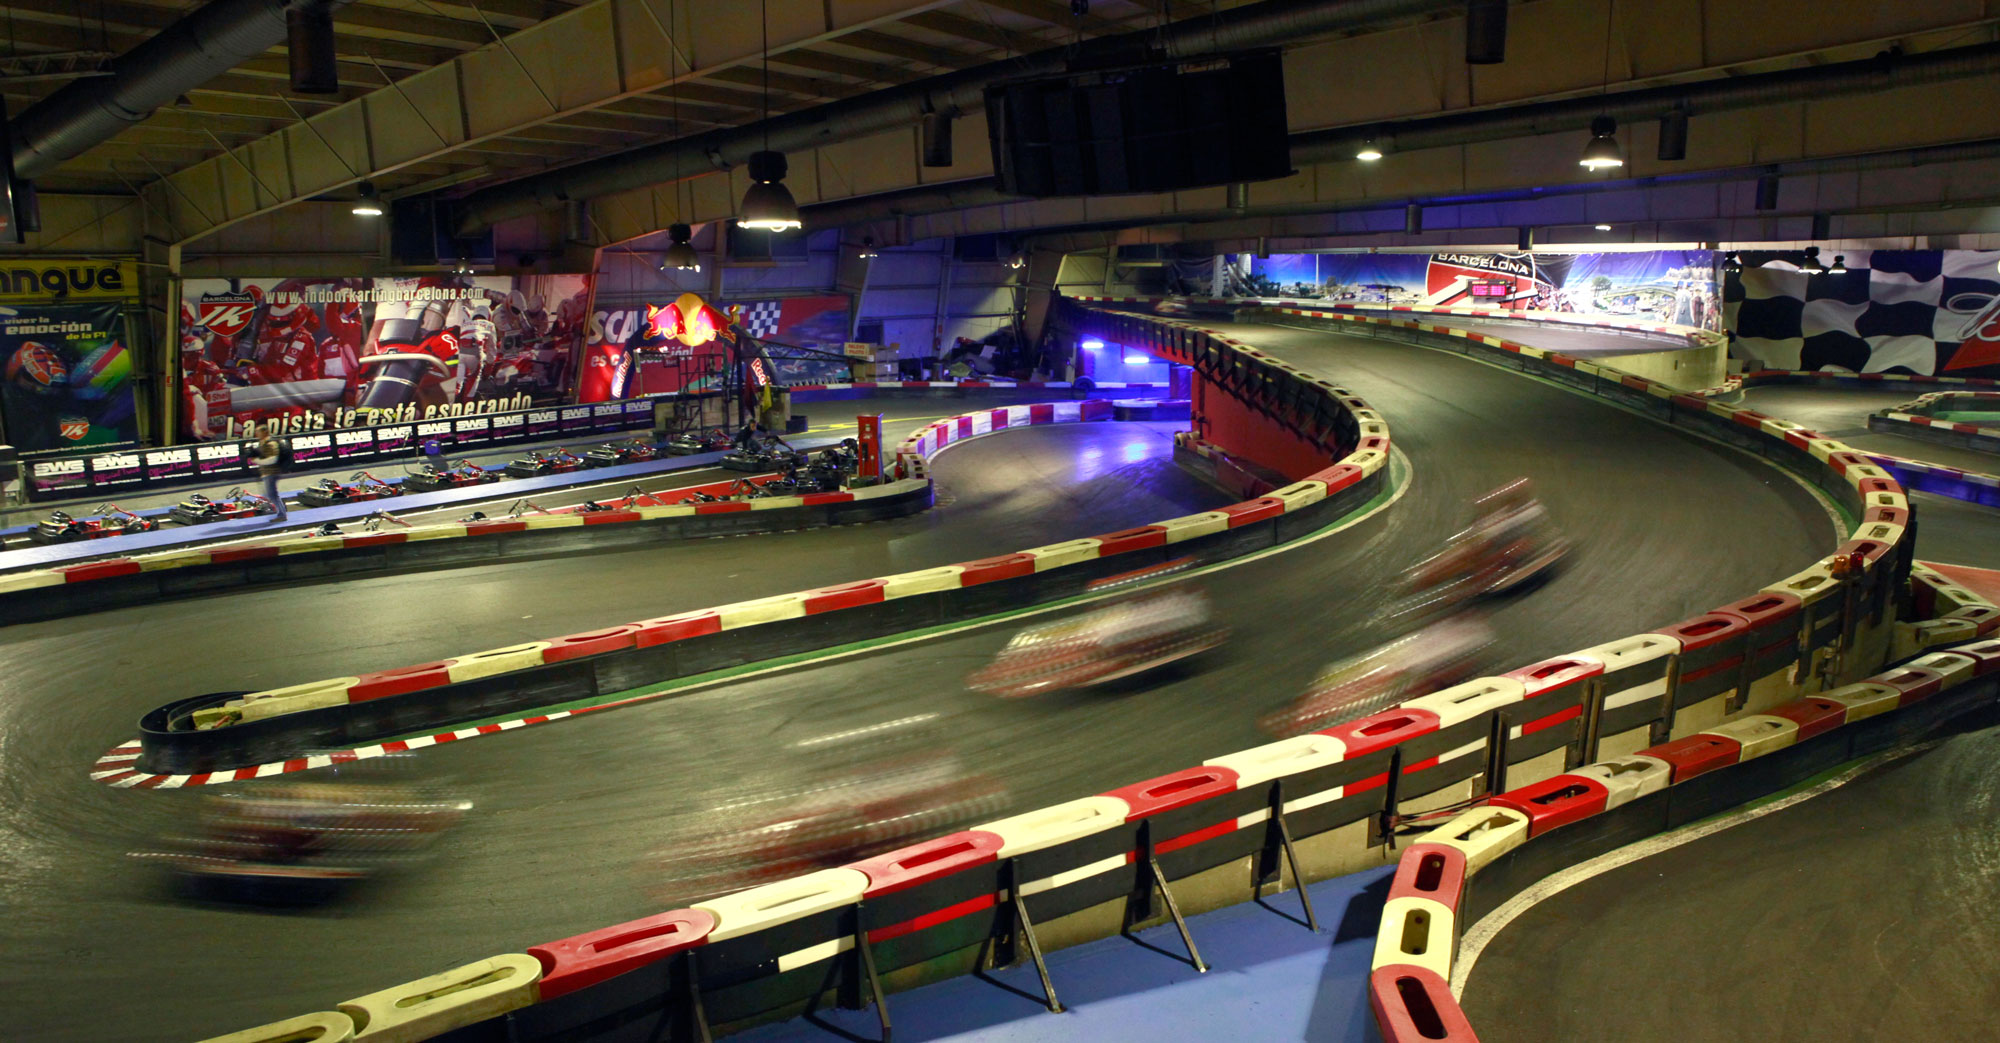 Pack Karting Indoor Bcn - karting-indoor-3.jpg